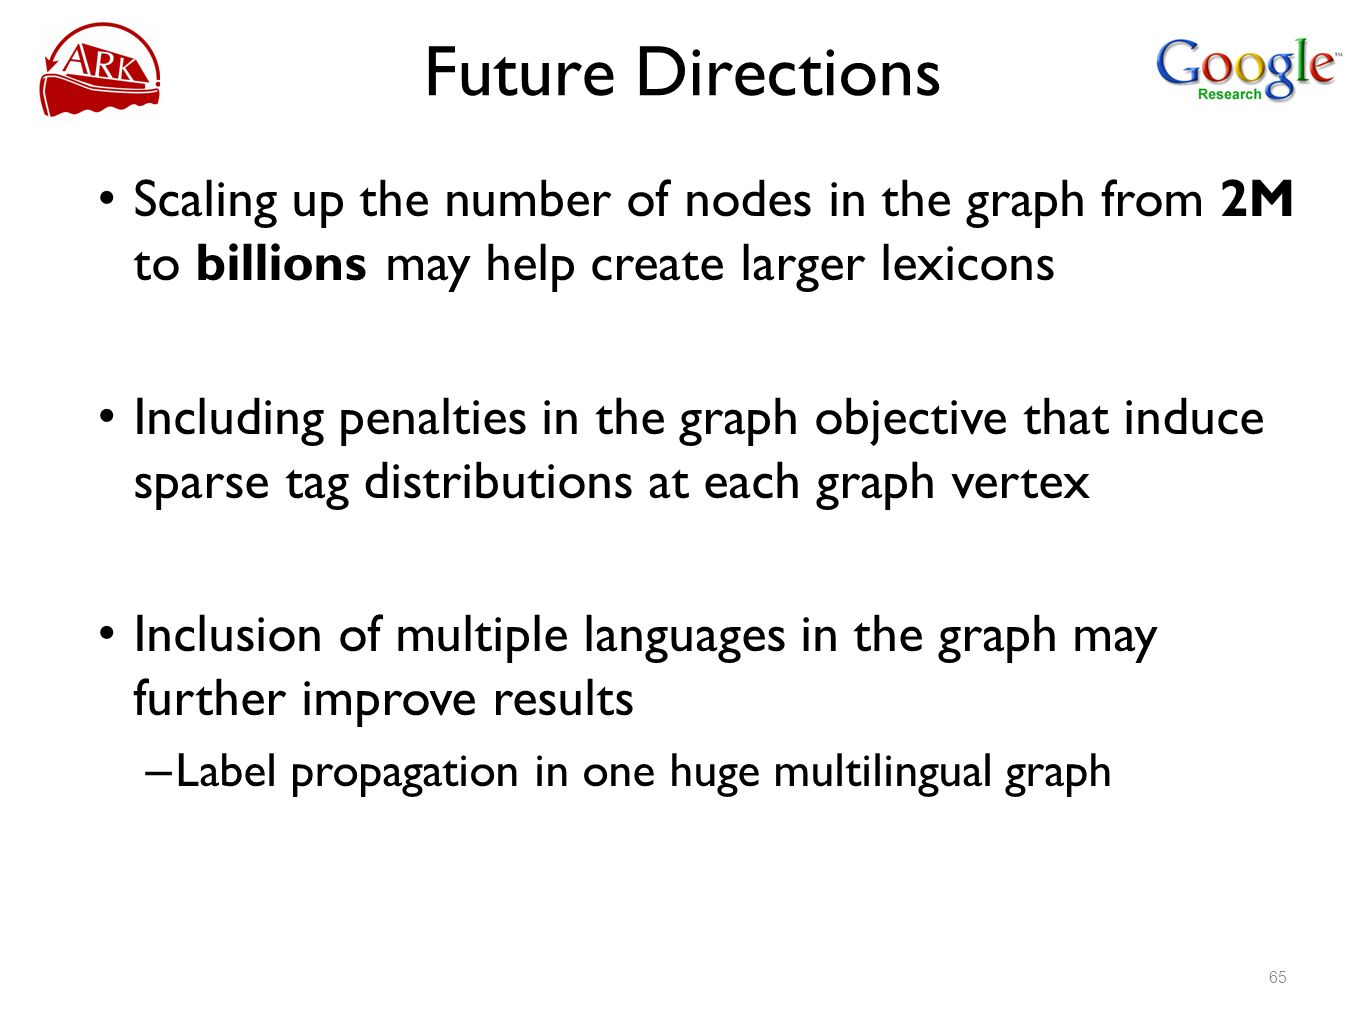 Future Directions Scaling up the number of nodes in the graph from 2M to billions may help create larger lexicons.